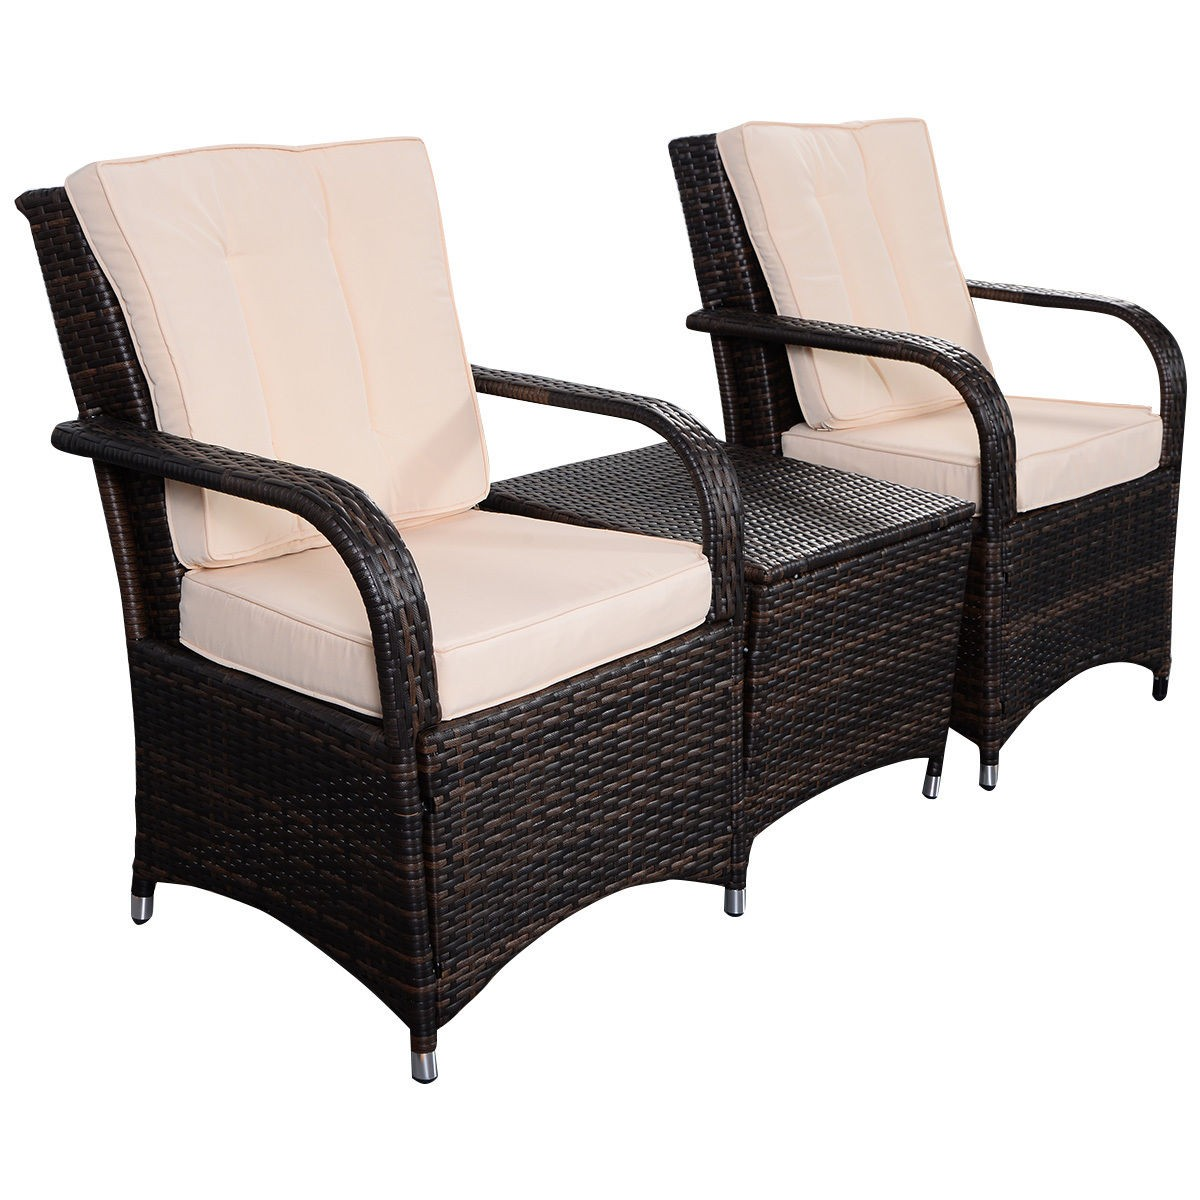 3 pcs outdoor patio pe rattan wicker furniture set seat for Real wicker outdoor furniture